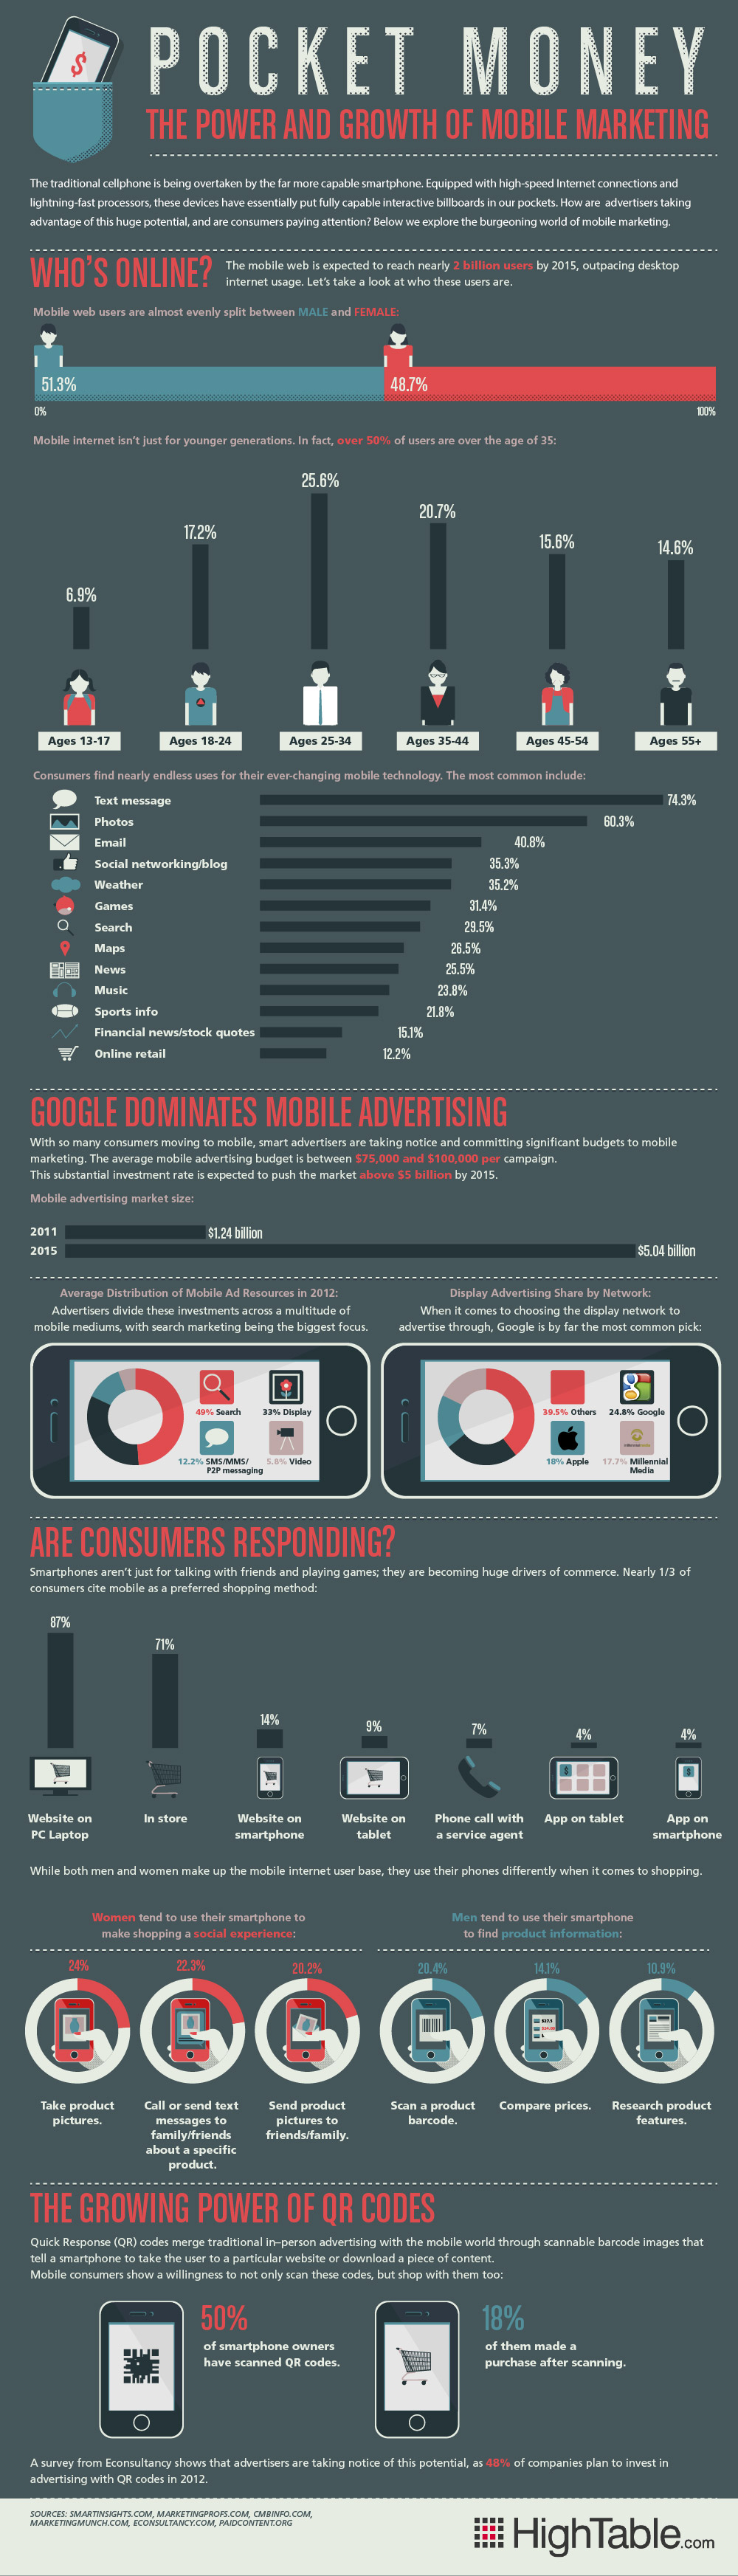 The-Power-And-Growth-Of-Mobile-Marketing-infographic